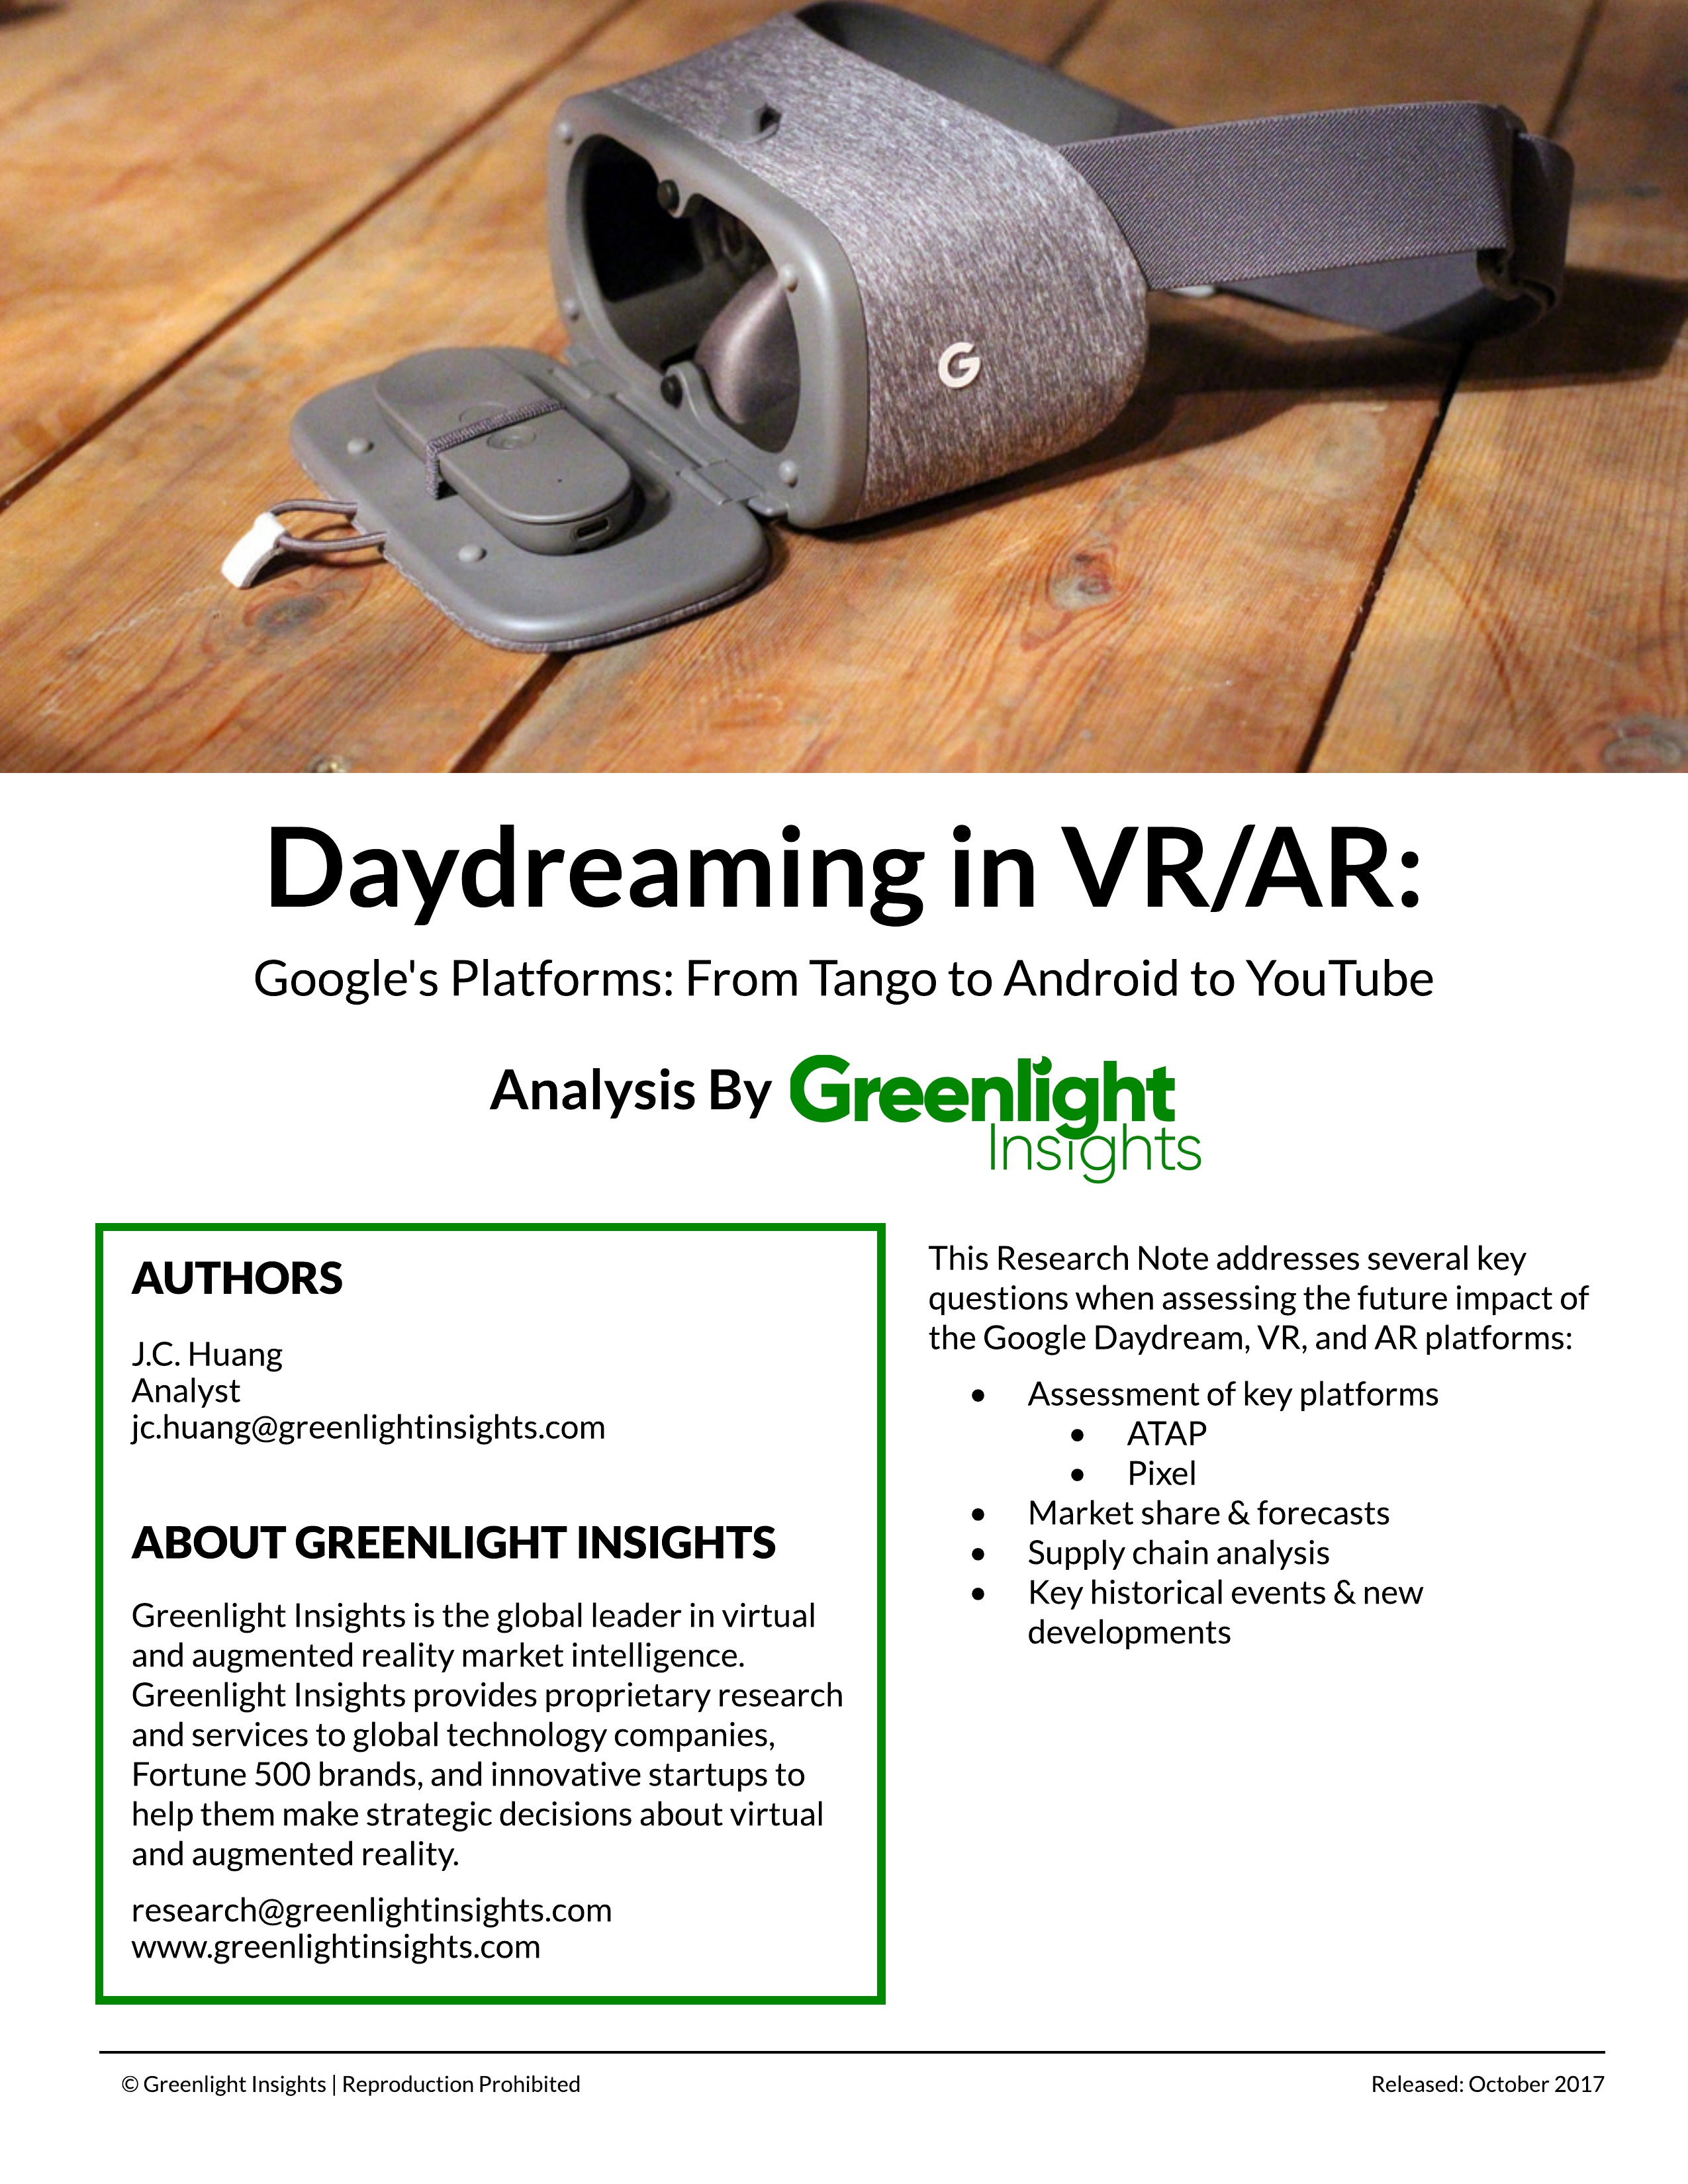 Daydreaming in VR/AR | Google's Platforms: From Tango to Android to